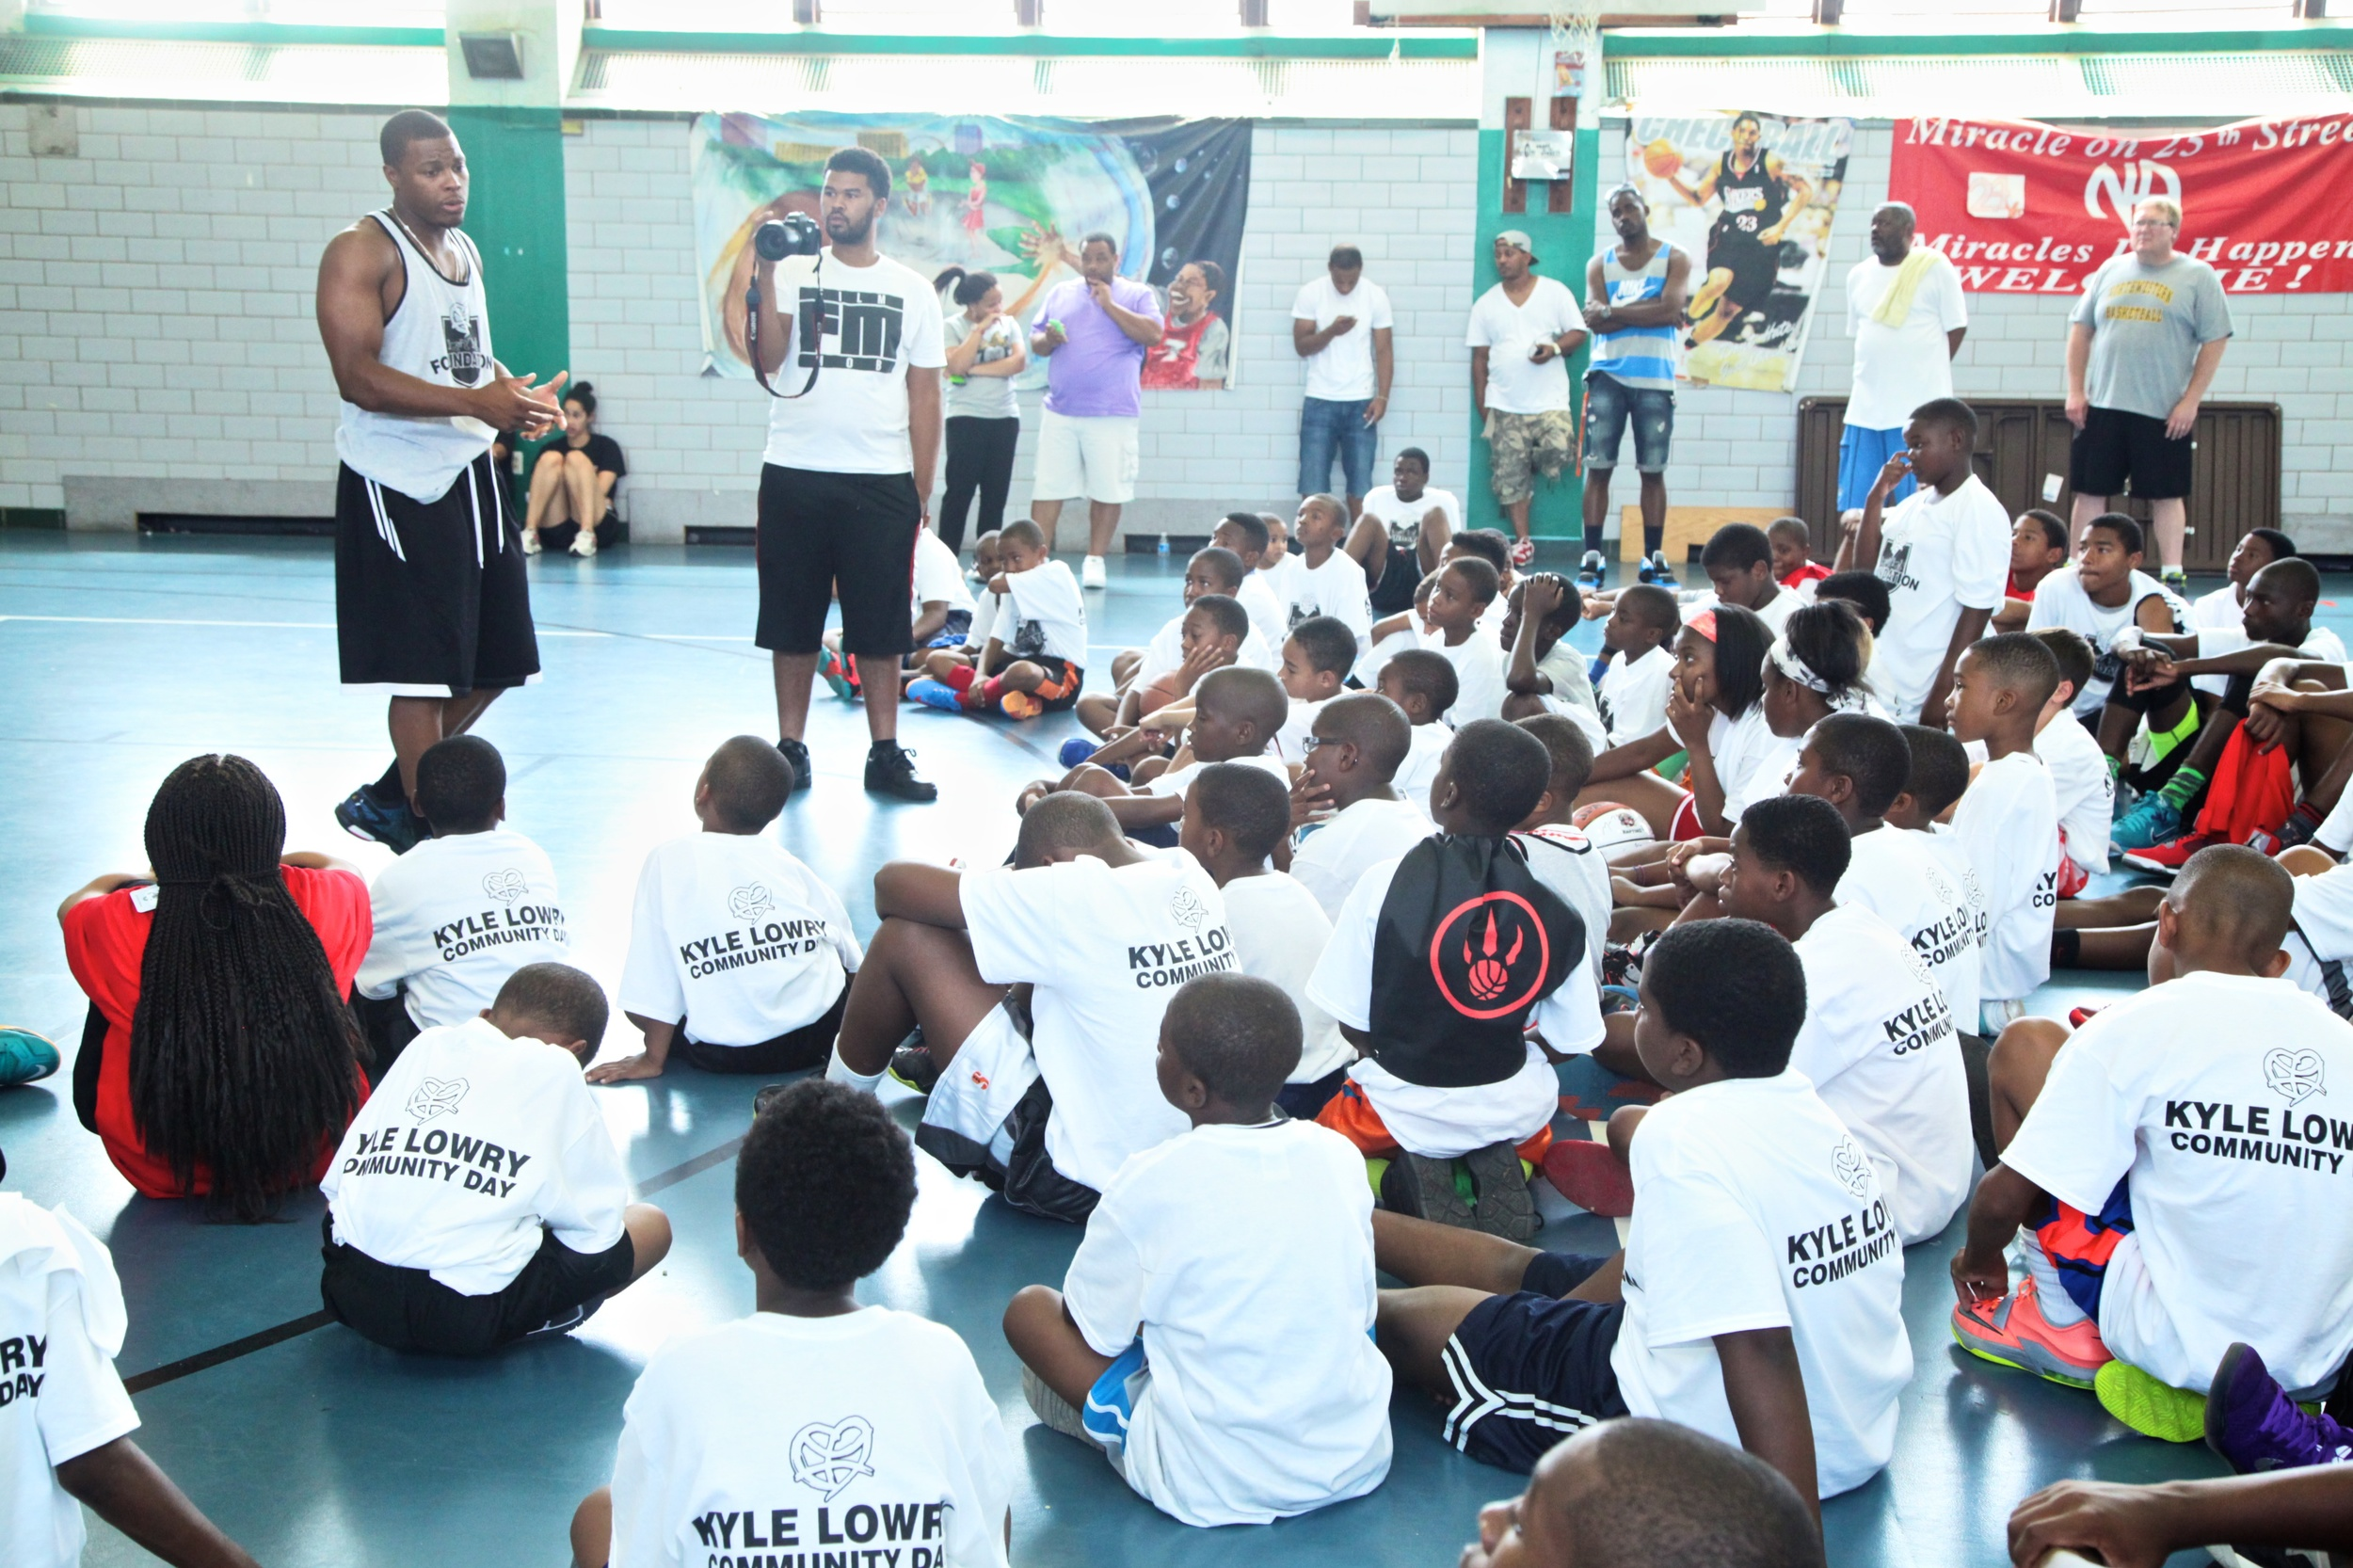 On August 16th, 2014, the   Kyle Lowry Skills Clinic and Community Day   returned to North Philadelphia's  Hank Gathers Recreation Center  for its second installment; this time with the added excitement of the inaugural  Kyle Lowry's Rising Stars Challenge.  A very big thank you to our volunteers, our sponsors  FamJuice, Herr's, BodyArmour, Shoprite, Adidas and Shotloc , and most importantly, the community for welcoming us with open arms. Check out the photos from the day   HERE     and the recap below.